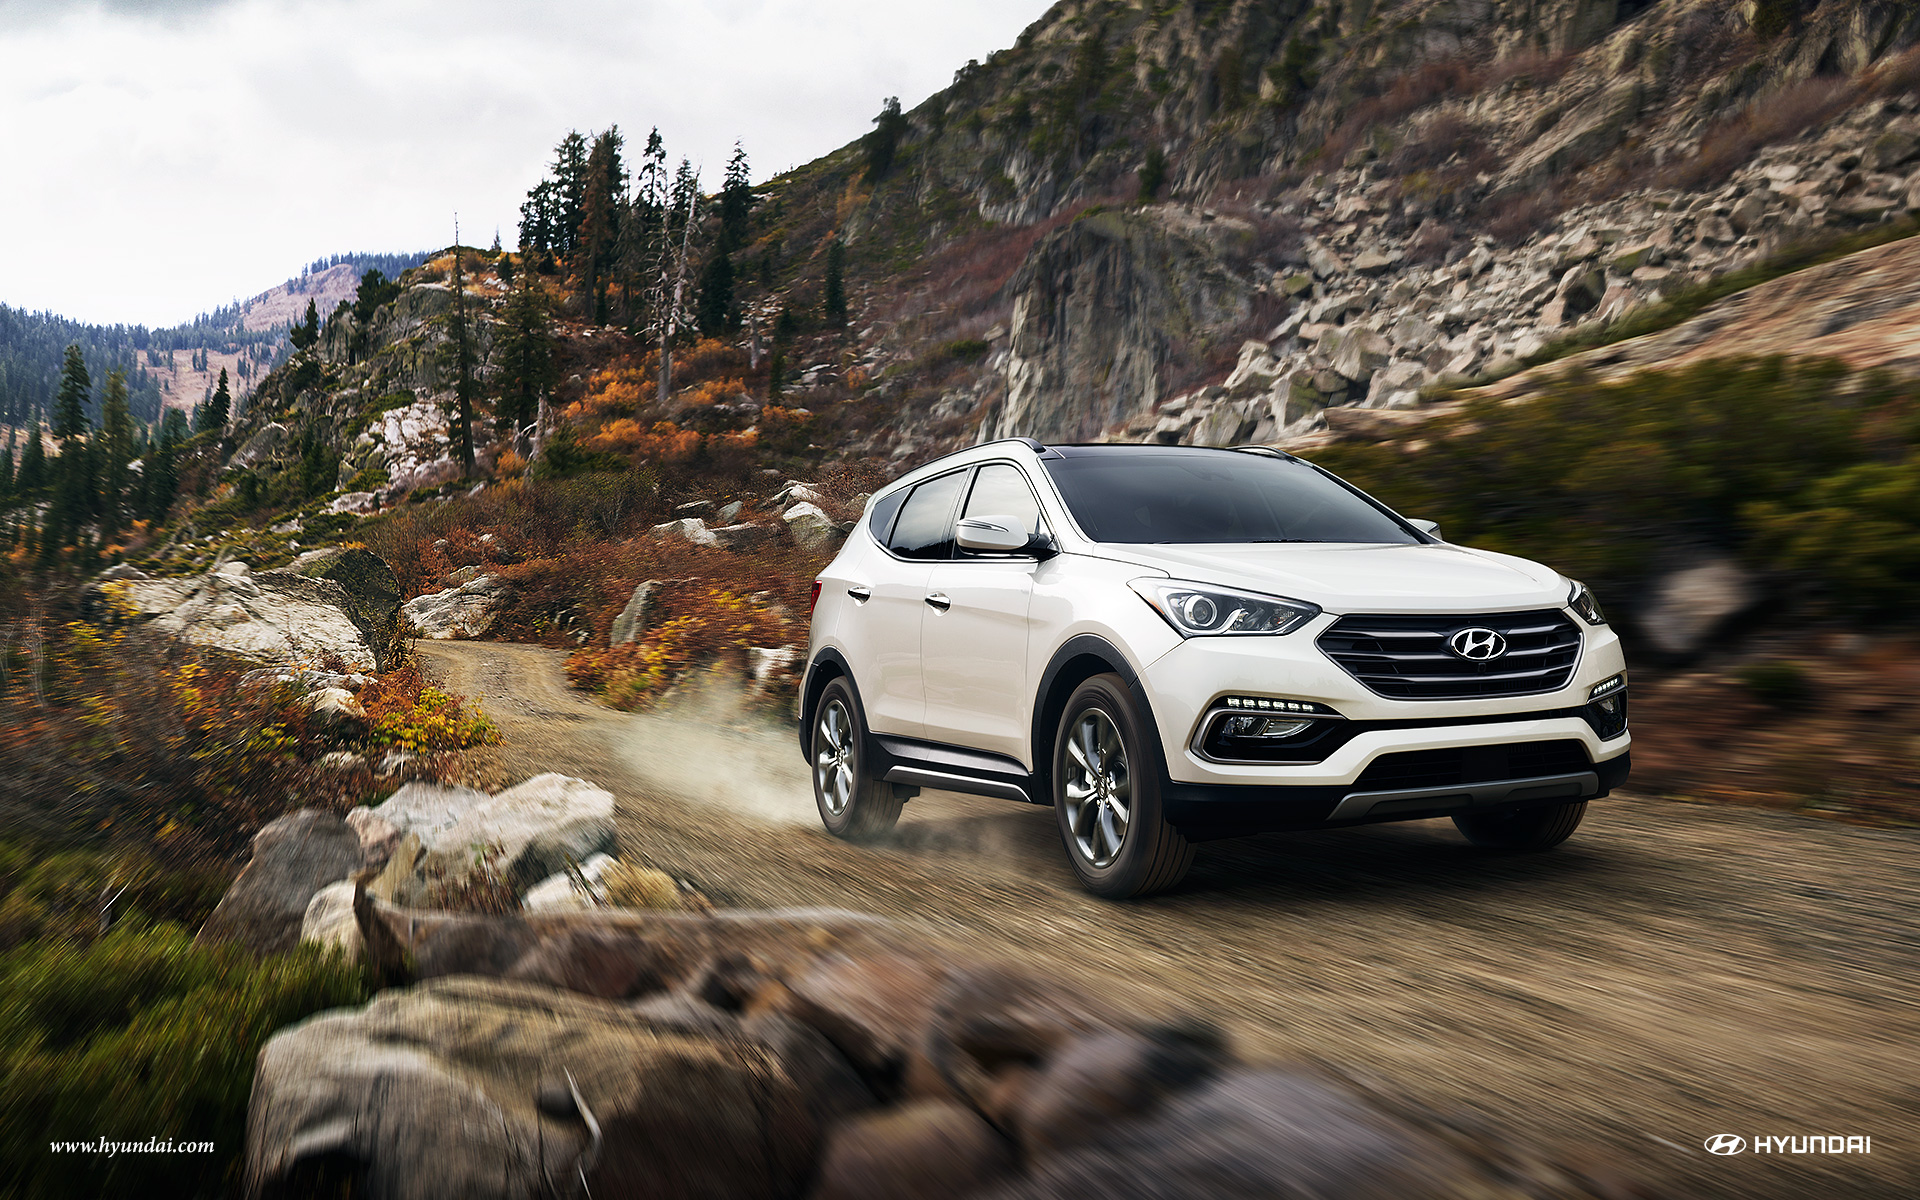 Hyundai Santa Fe Family of SUVs Fits the Demands of Your Lifestyle